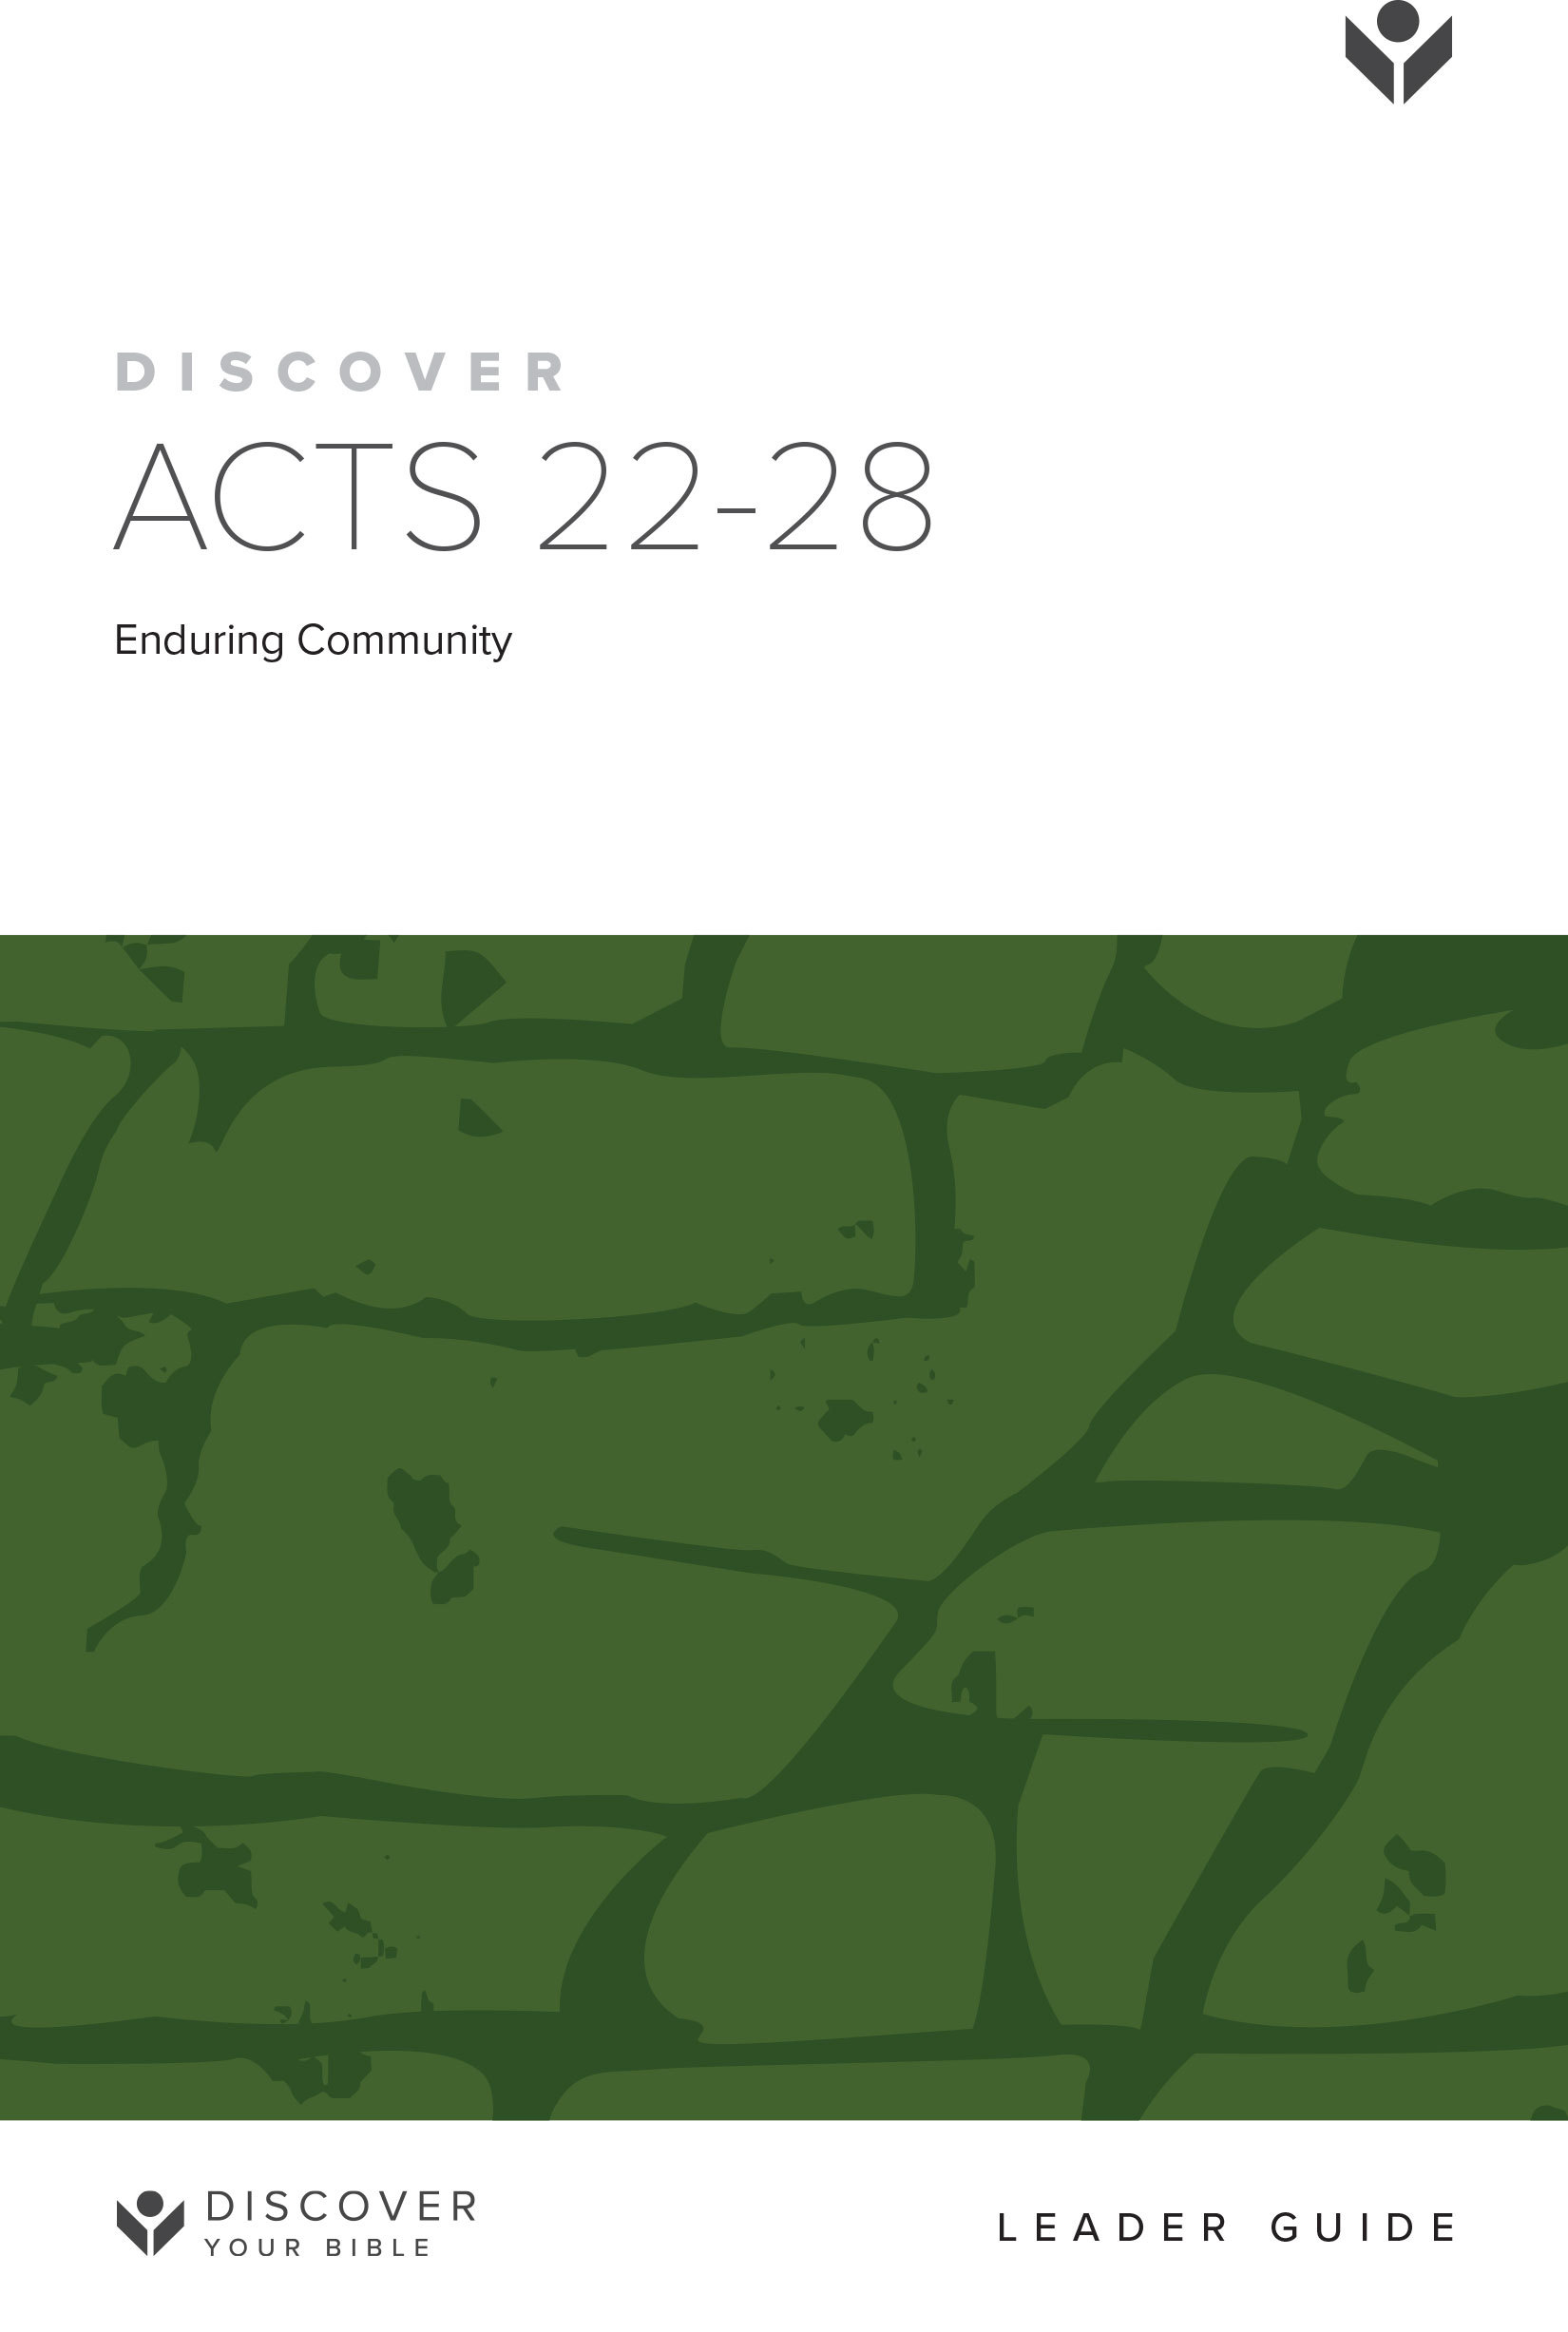 Discover Acts 22-28 Leader Guide cover image